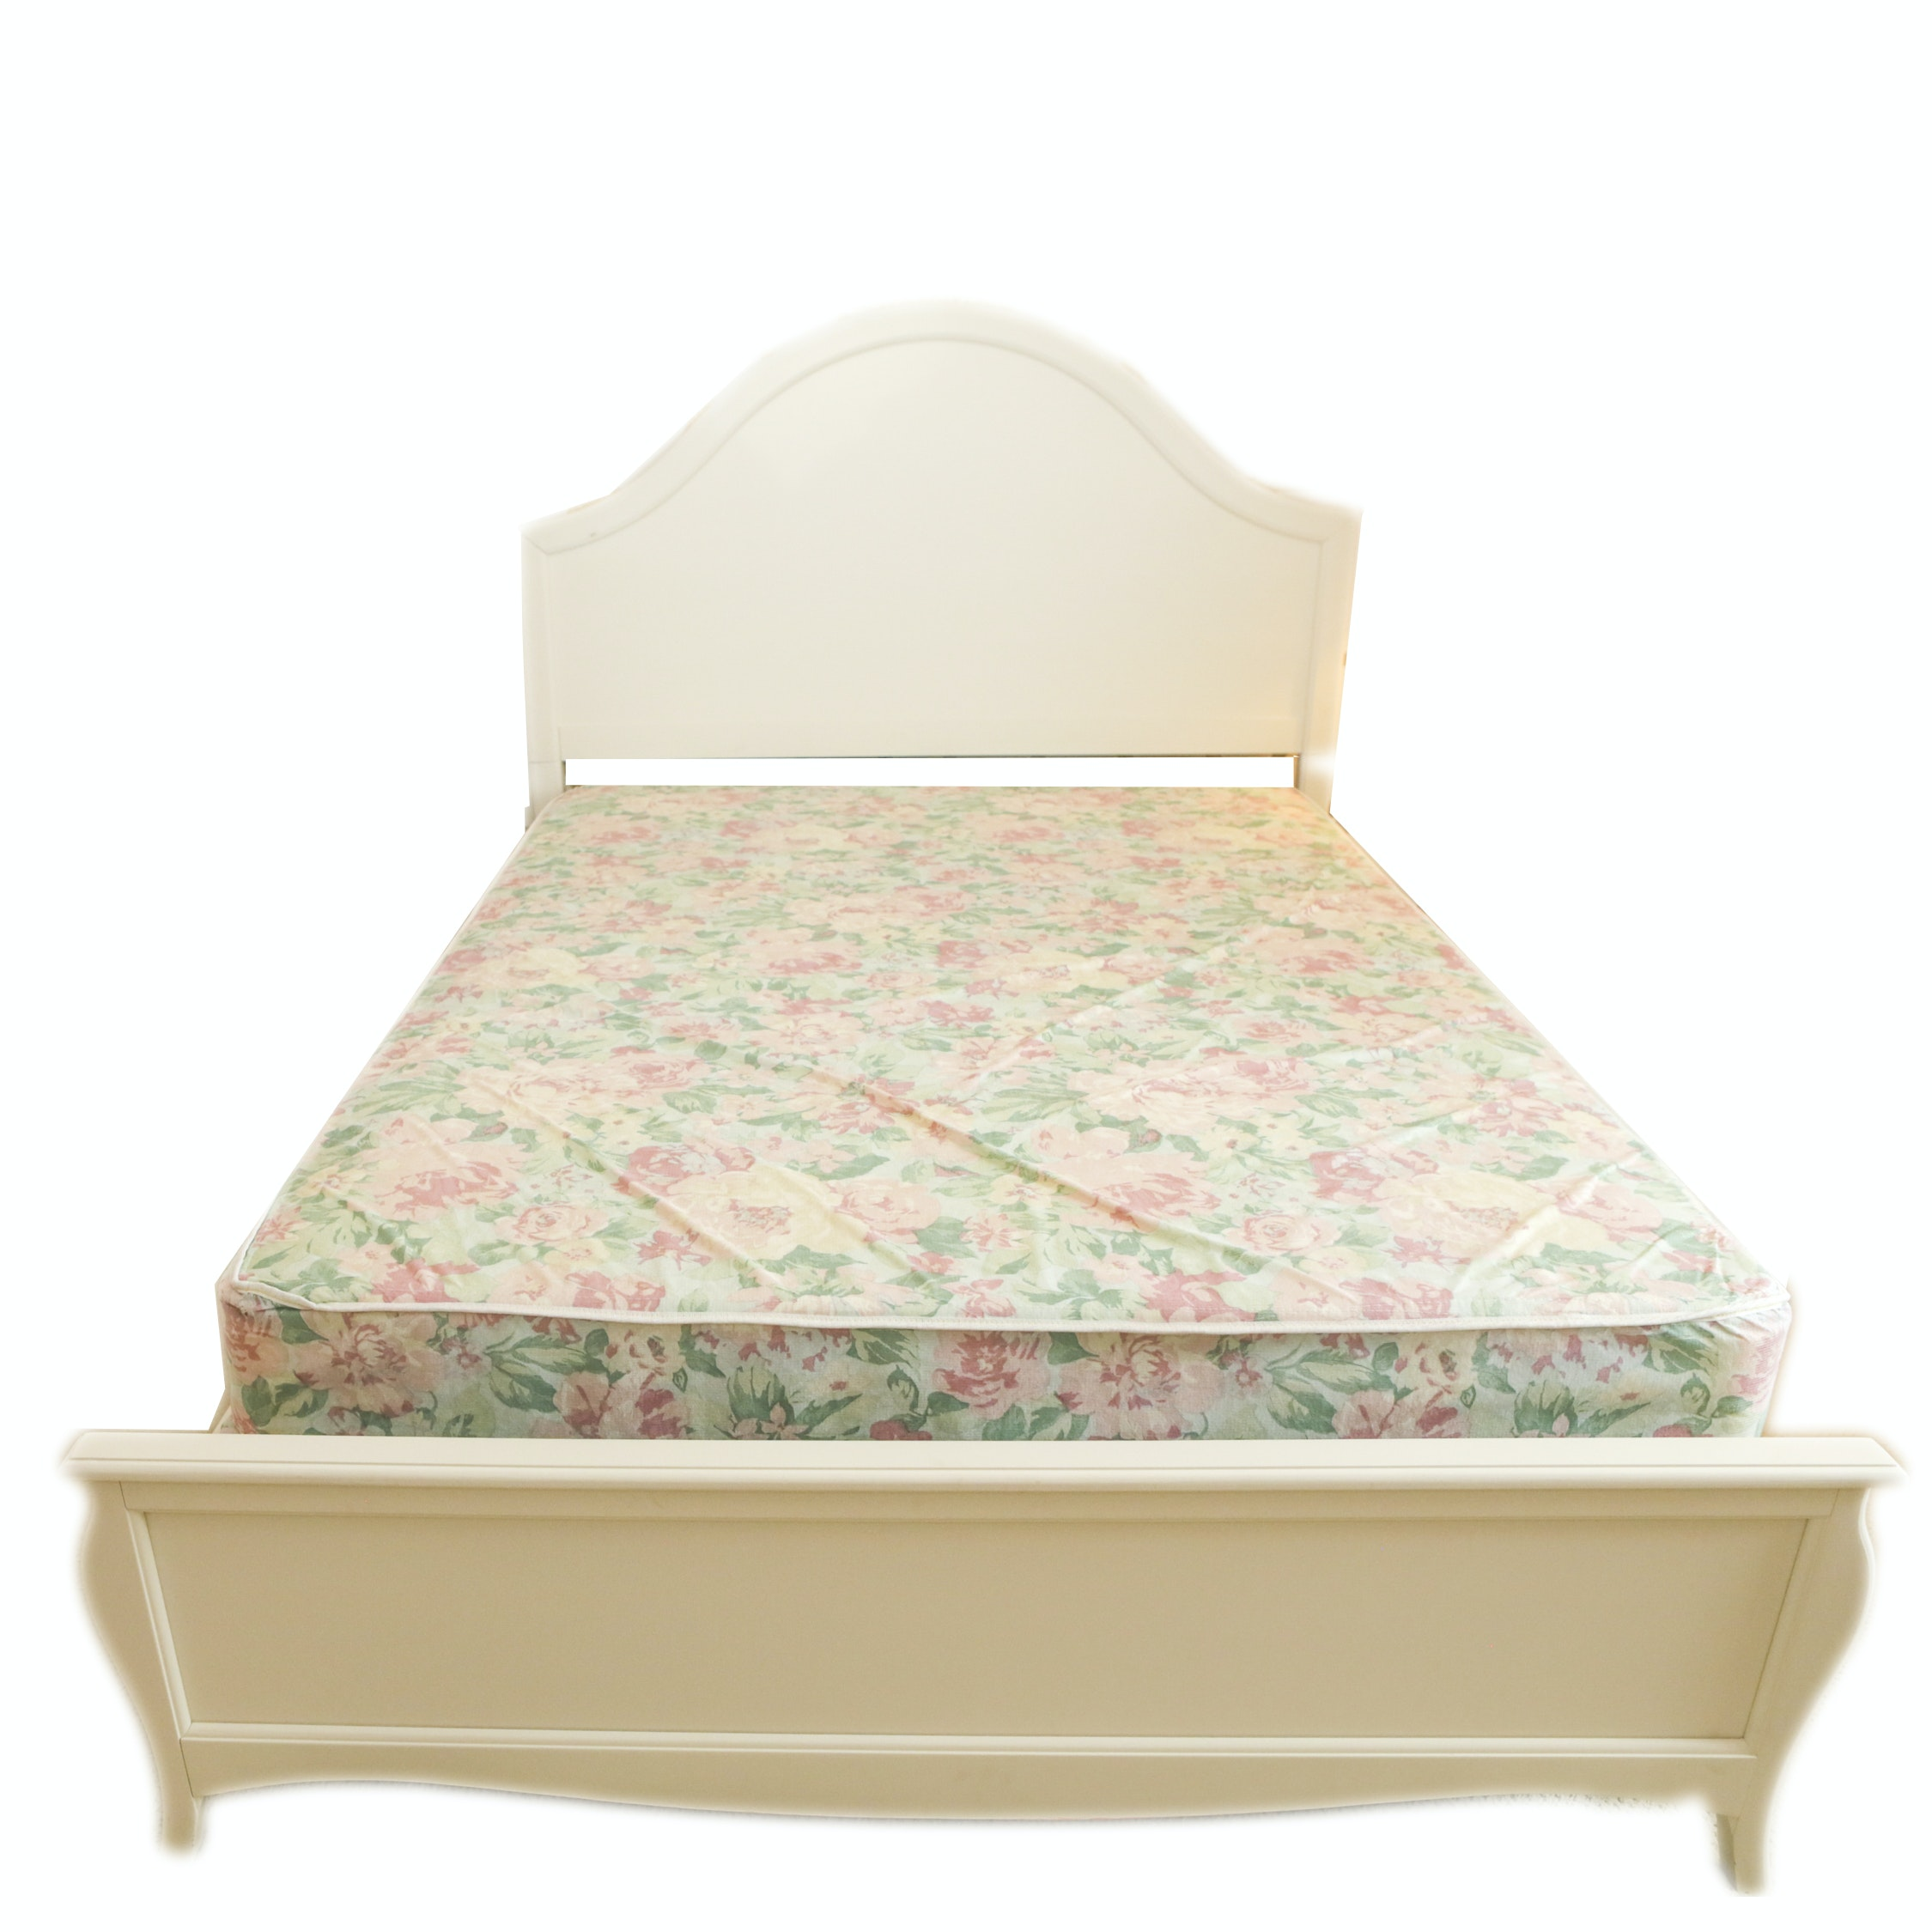 Contemporary White Painted Full Size Bed Frame